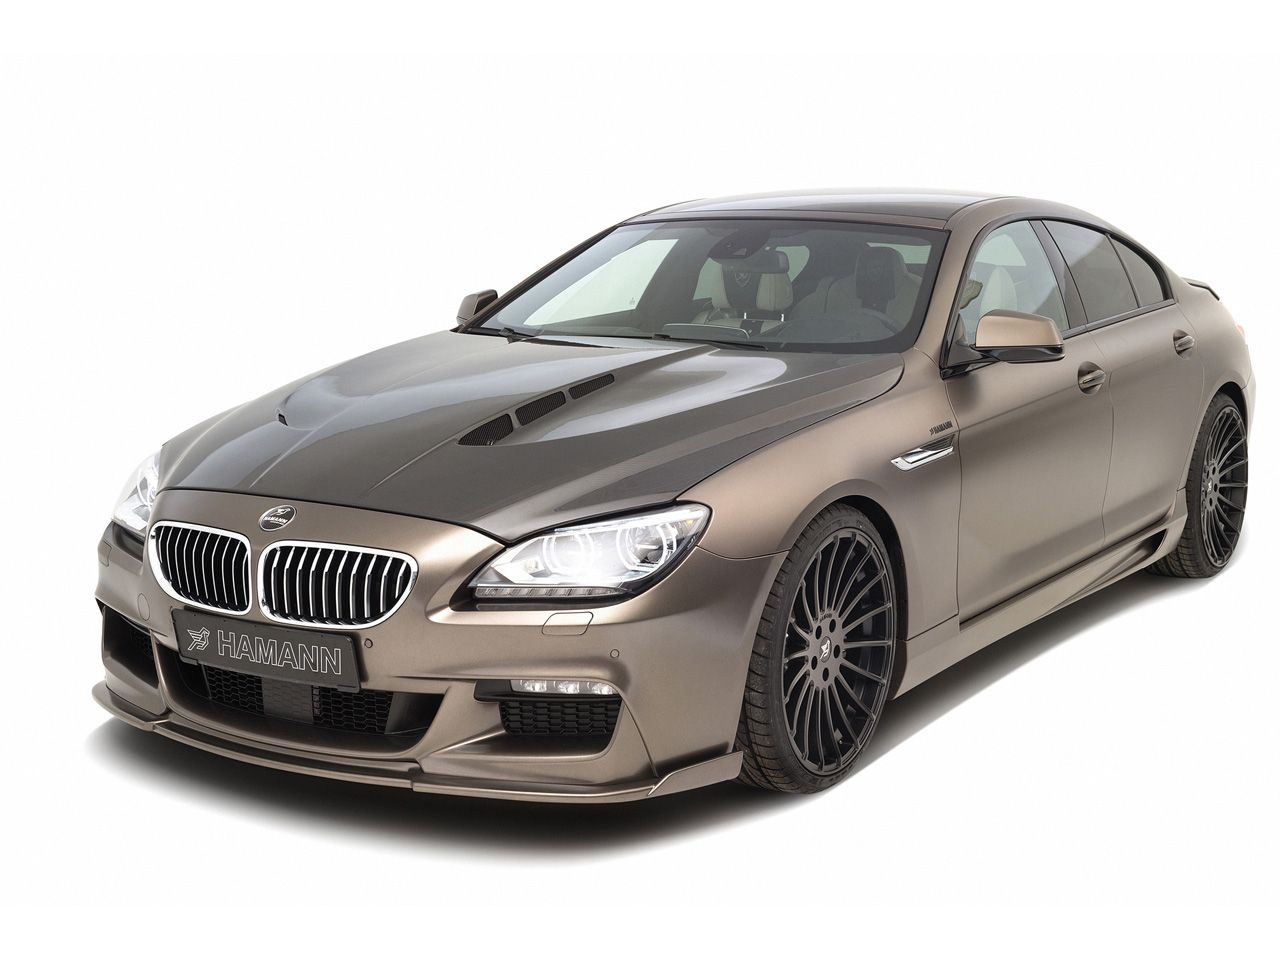 2013 Hamann Bmw 6 Series Gran Coupe Favorite Cars New Old